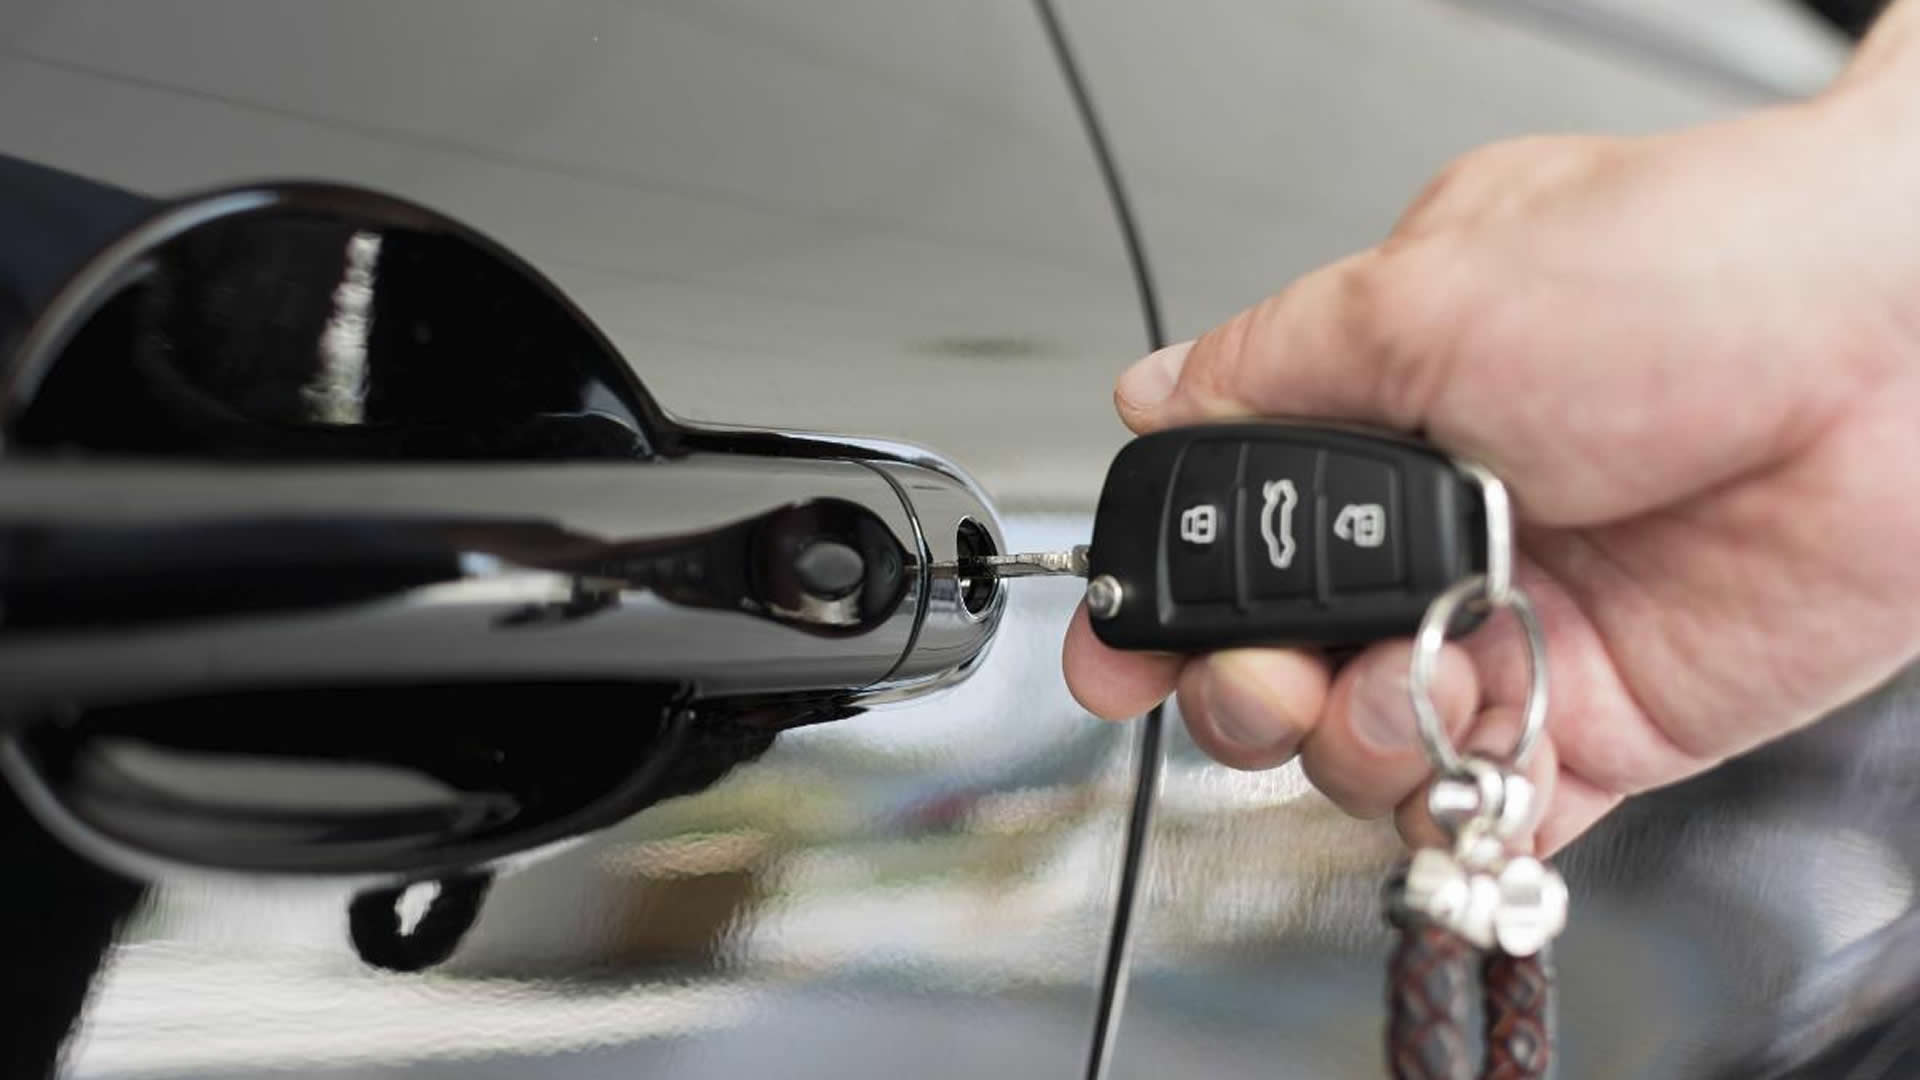 Car Key Replacement & Auto Key Fob Programming in Queens